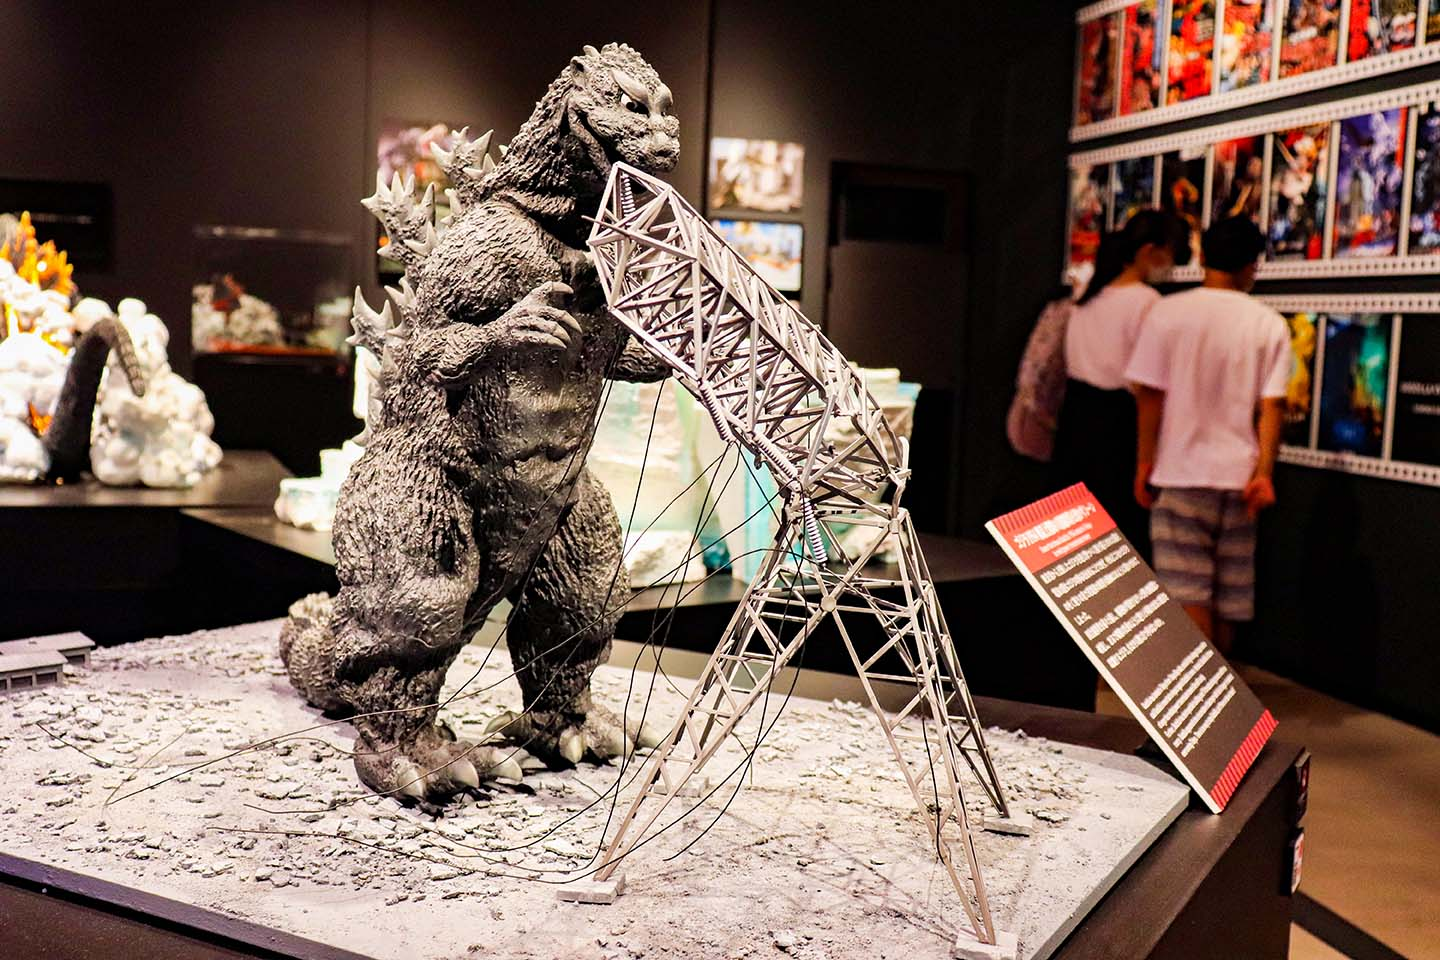 World's first permanent Godzilla Museum